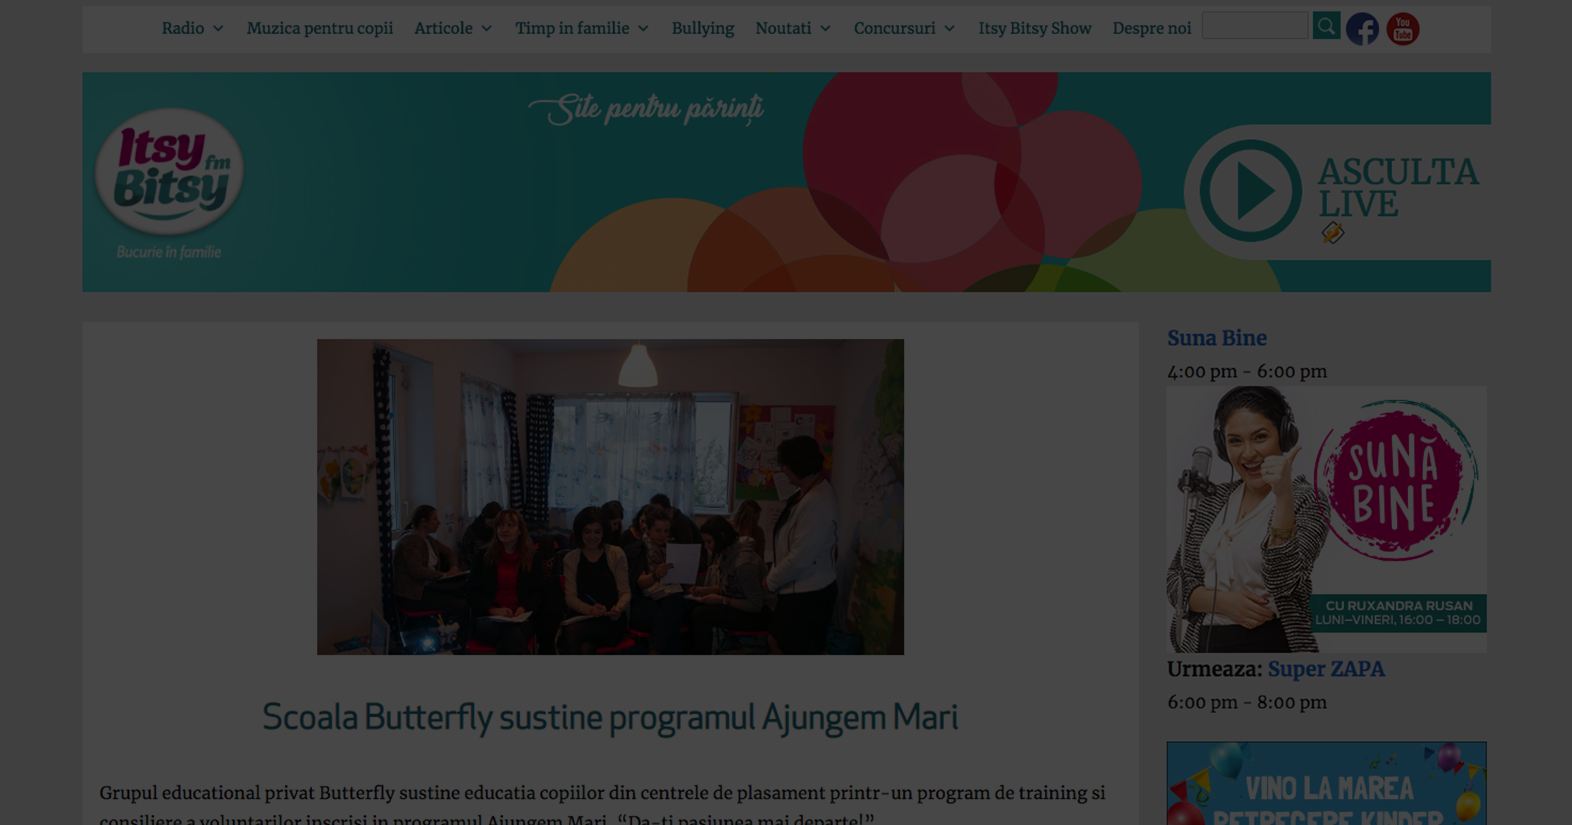 Grupul educational privat Butterfly sustine educatia copiilor